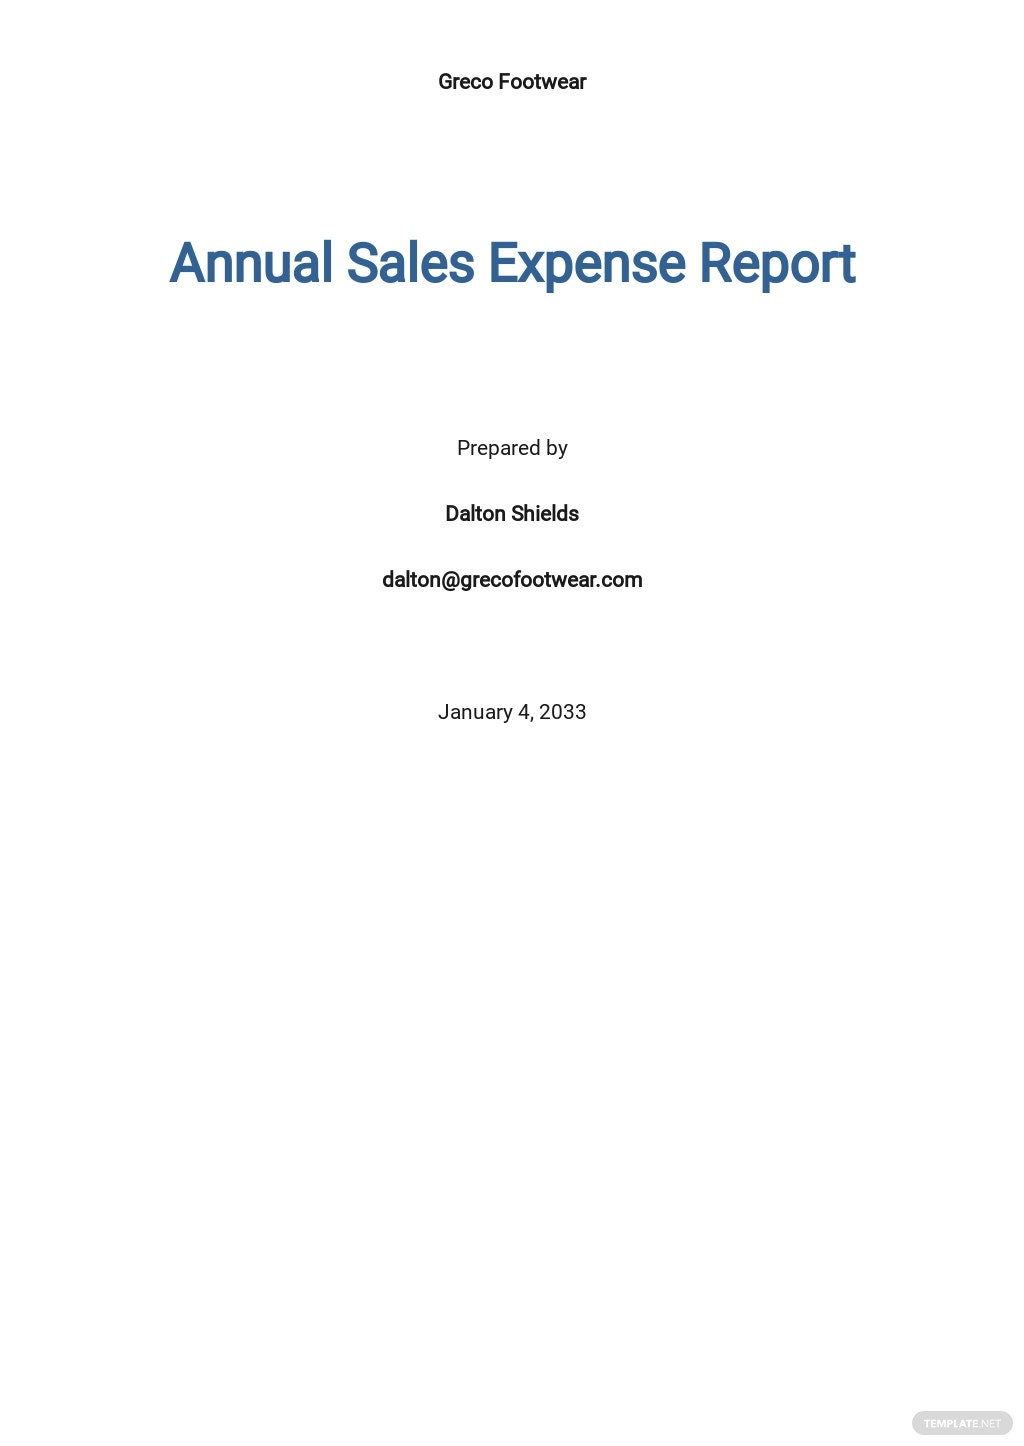 Free Annual Sales Expense Report Template.jpe